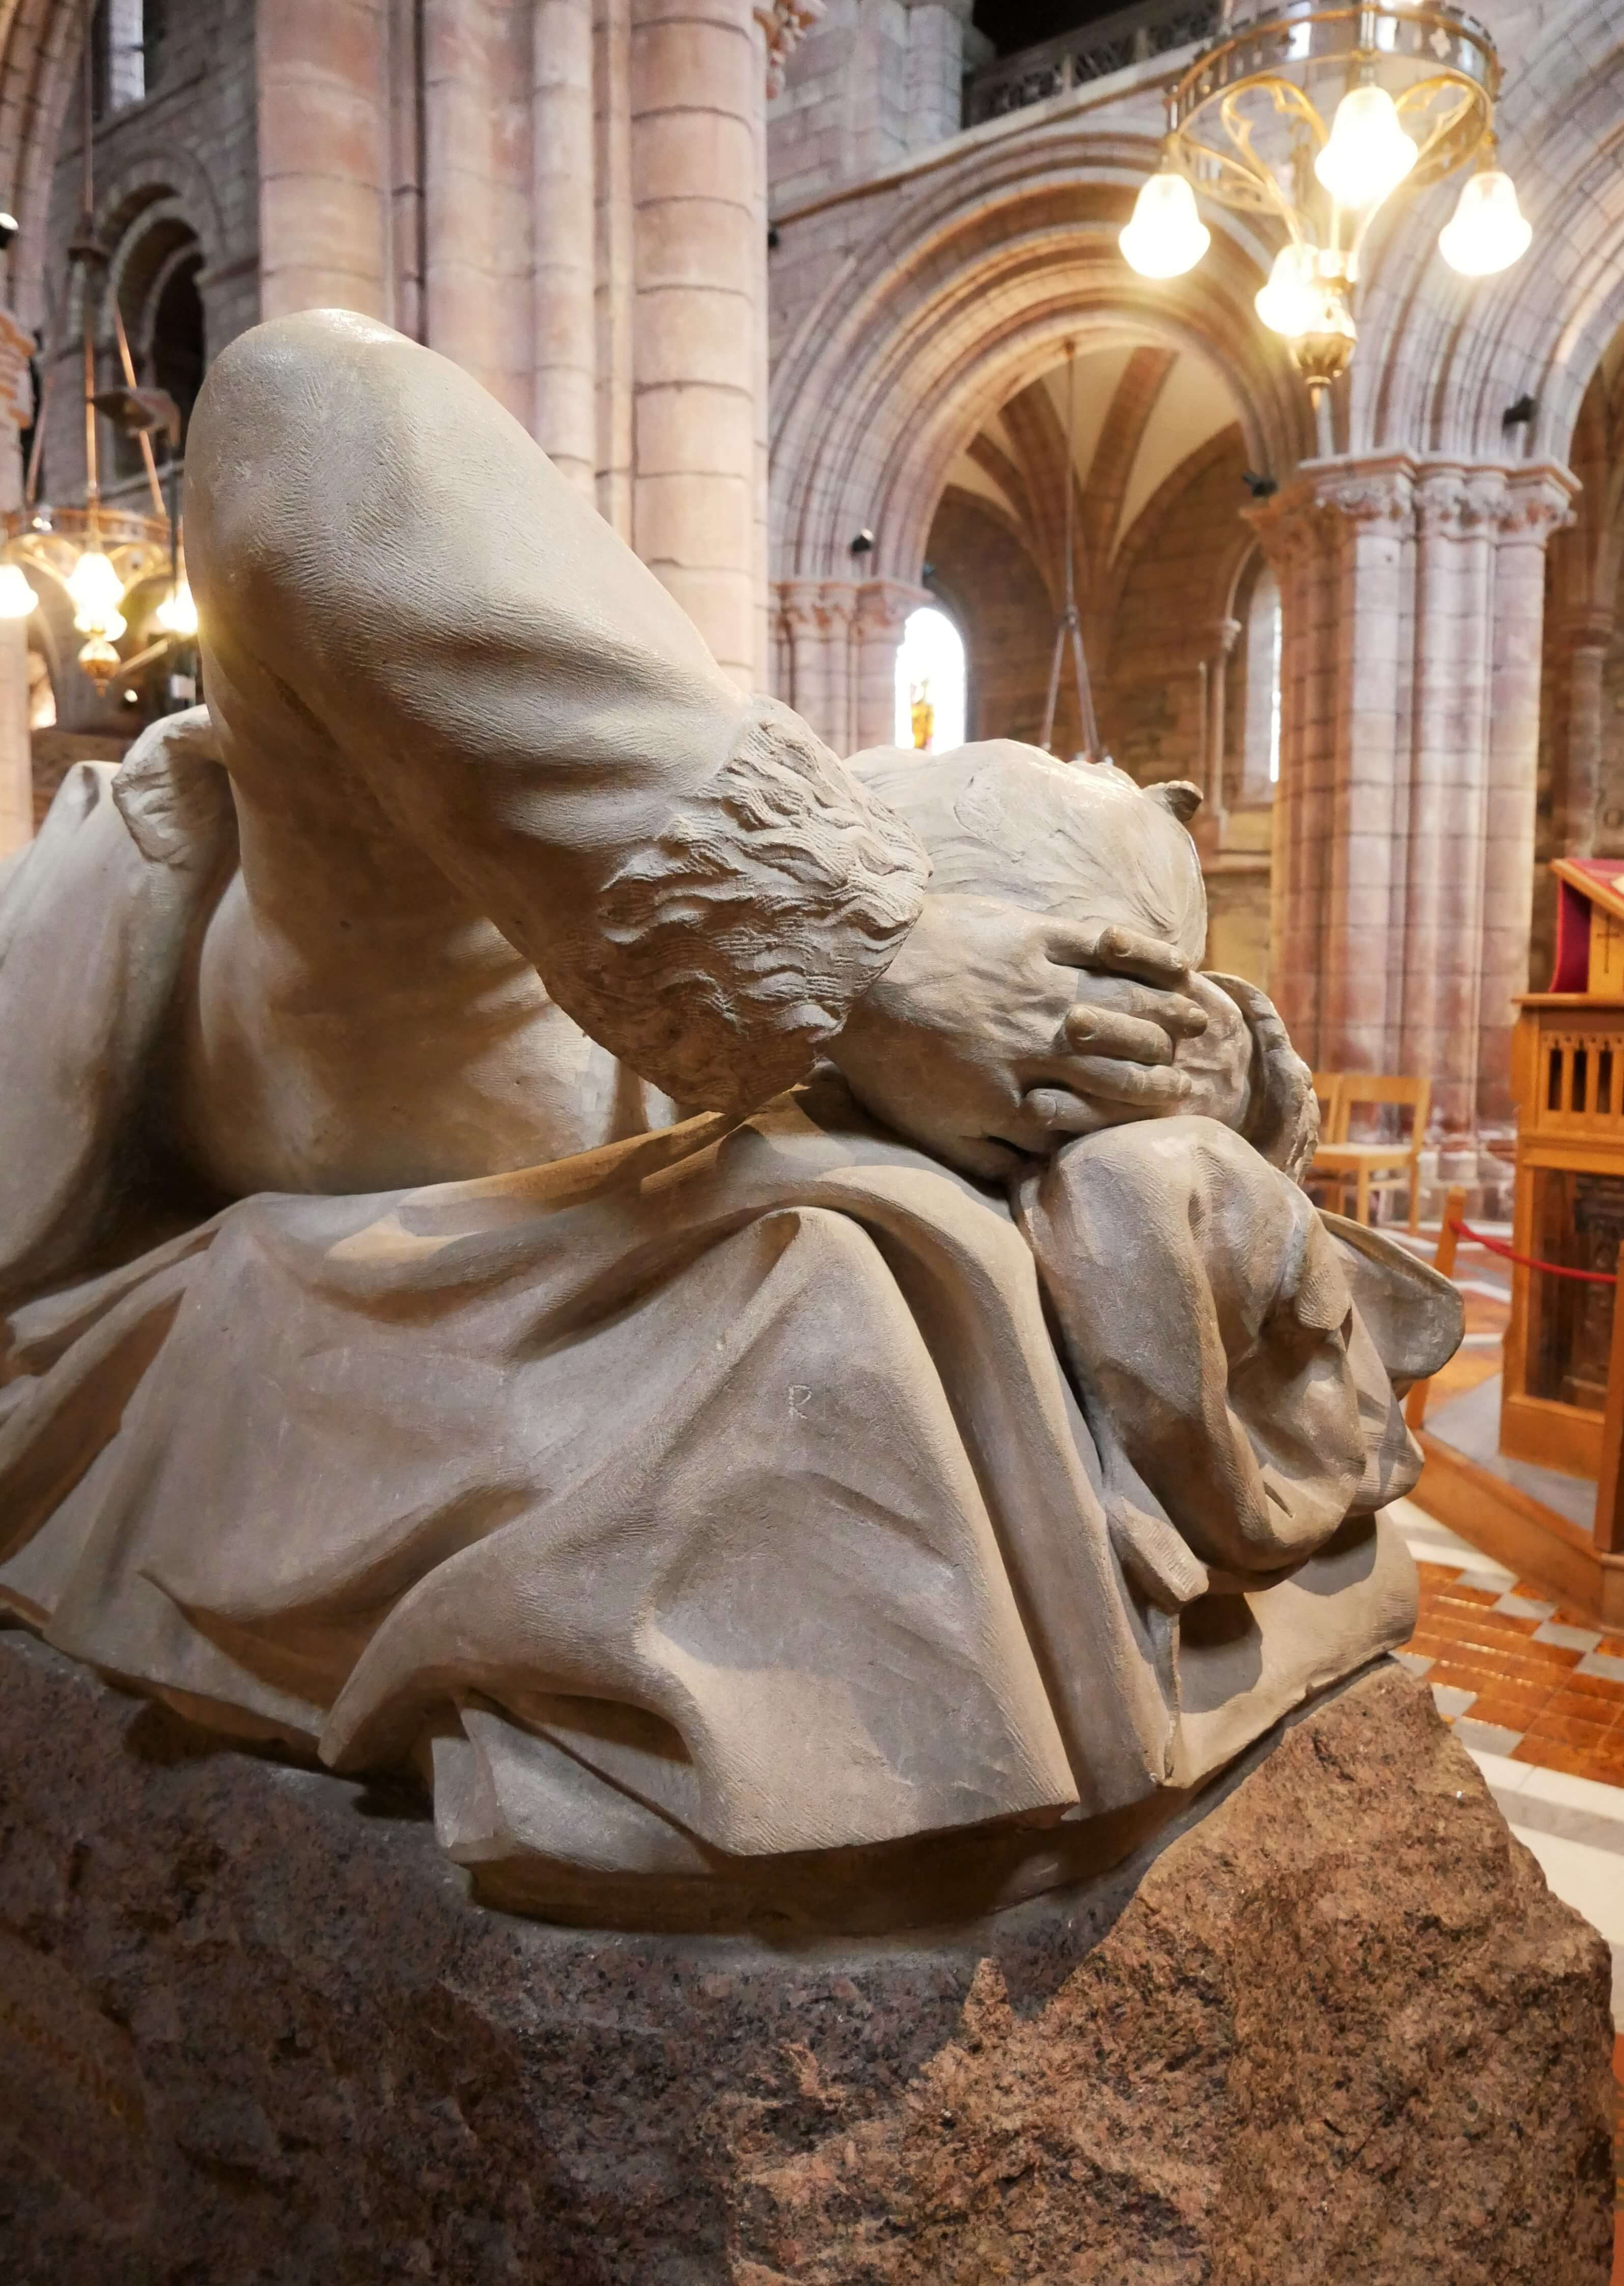 Statue memorial of Arctic explorer J Rae in St Magnus Cathedral, Orkney Islands, Scotland, UK